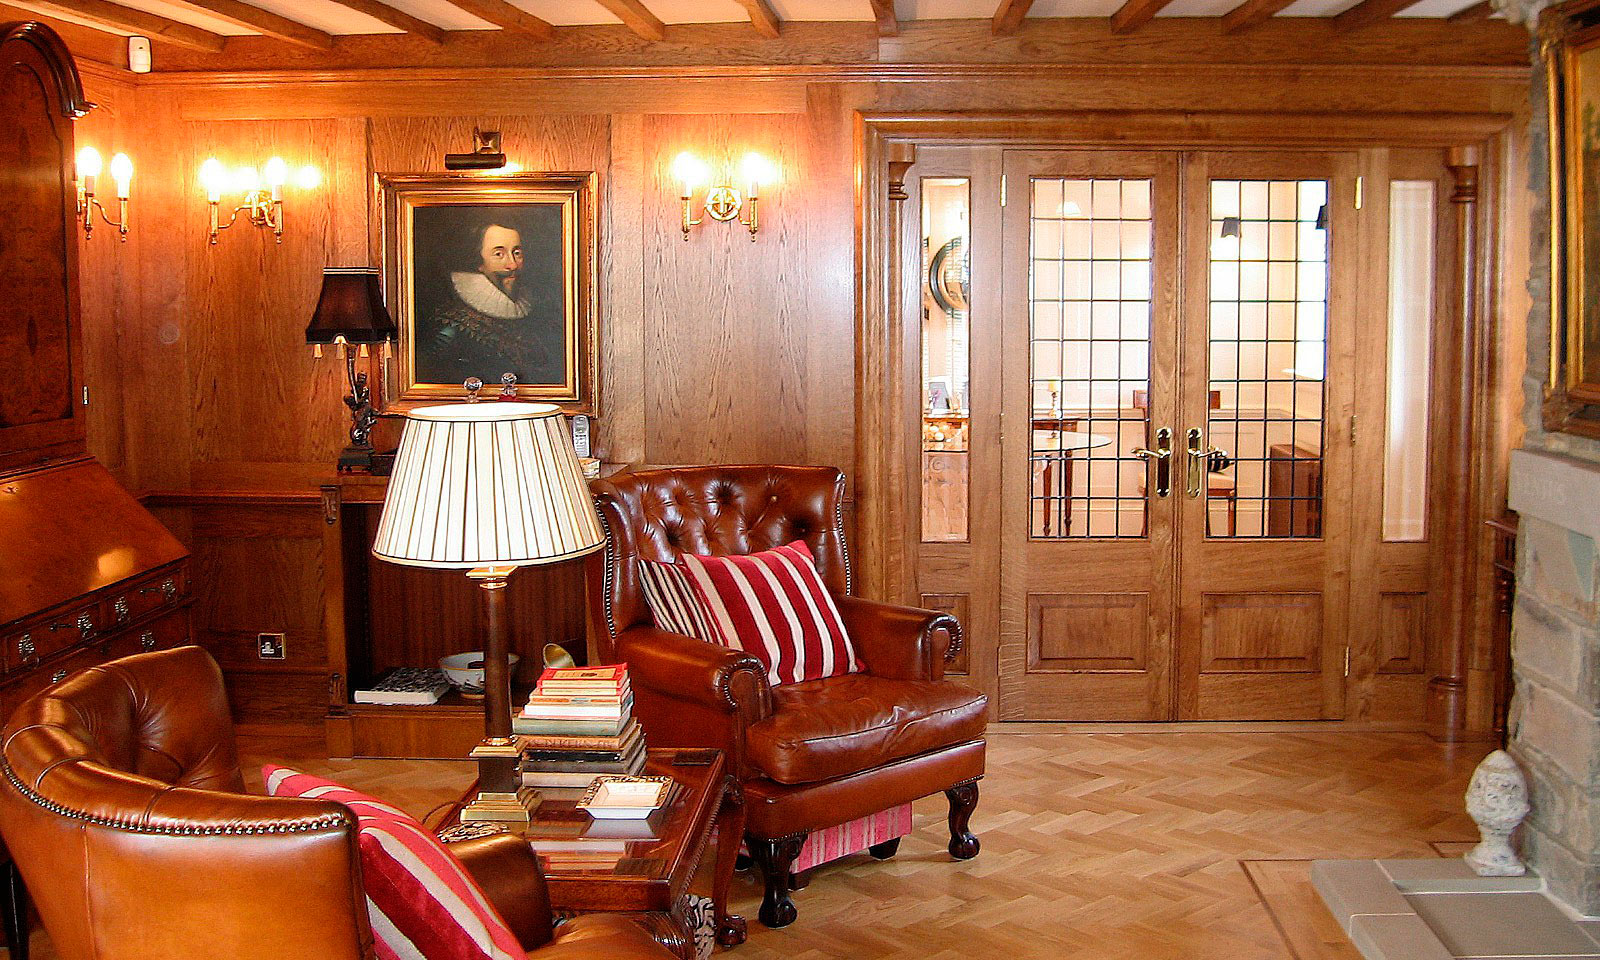 Oak panelled drawing room. Bespoke, custom made, traditional hardwood panelling, pediments, architraves and balusters, manufactured and installed by the skilled joiners at Mounts Hill Woodcraft.